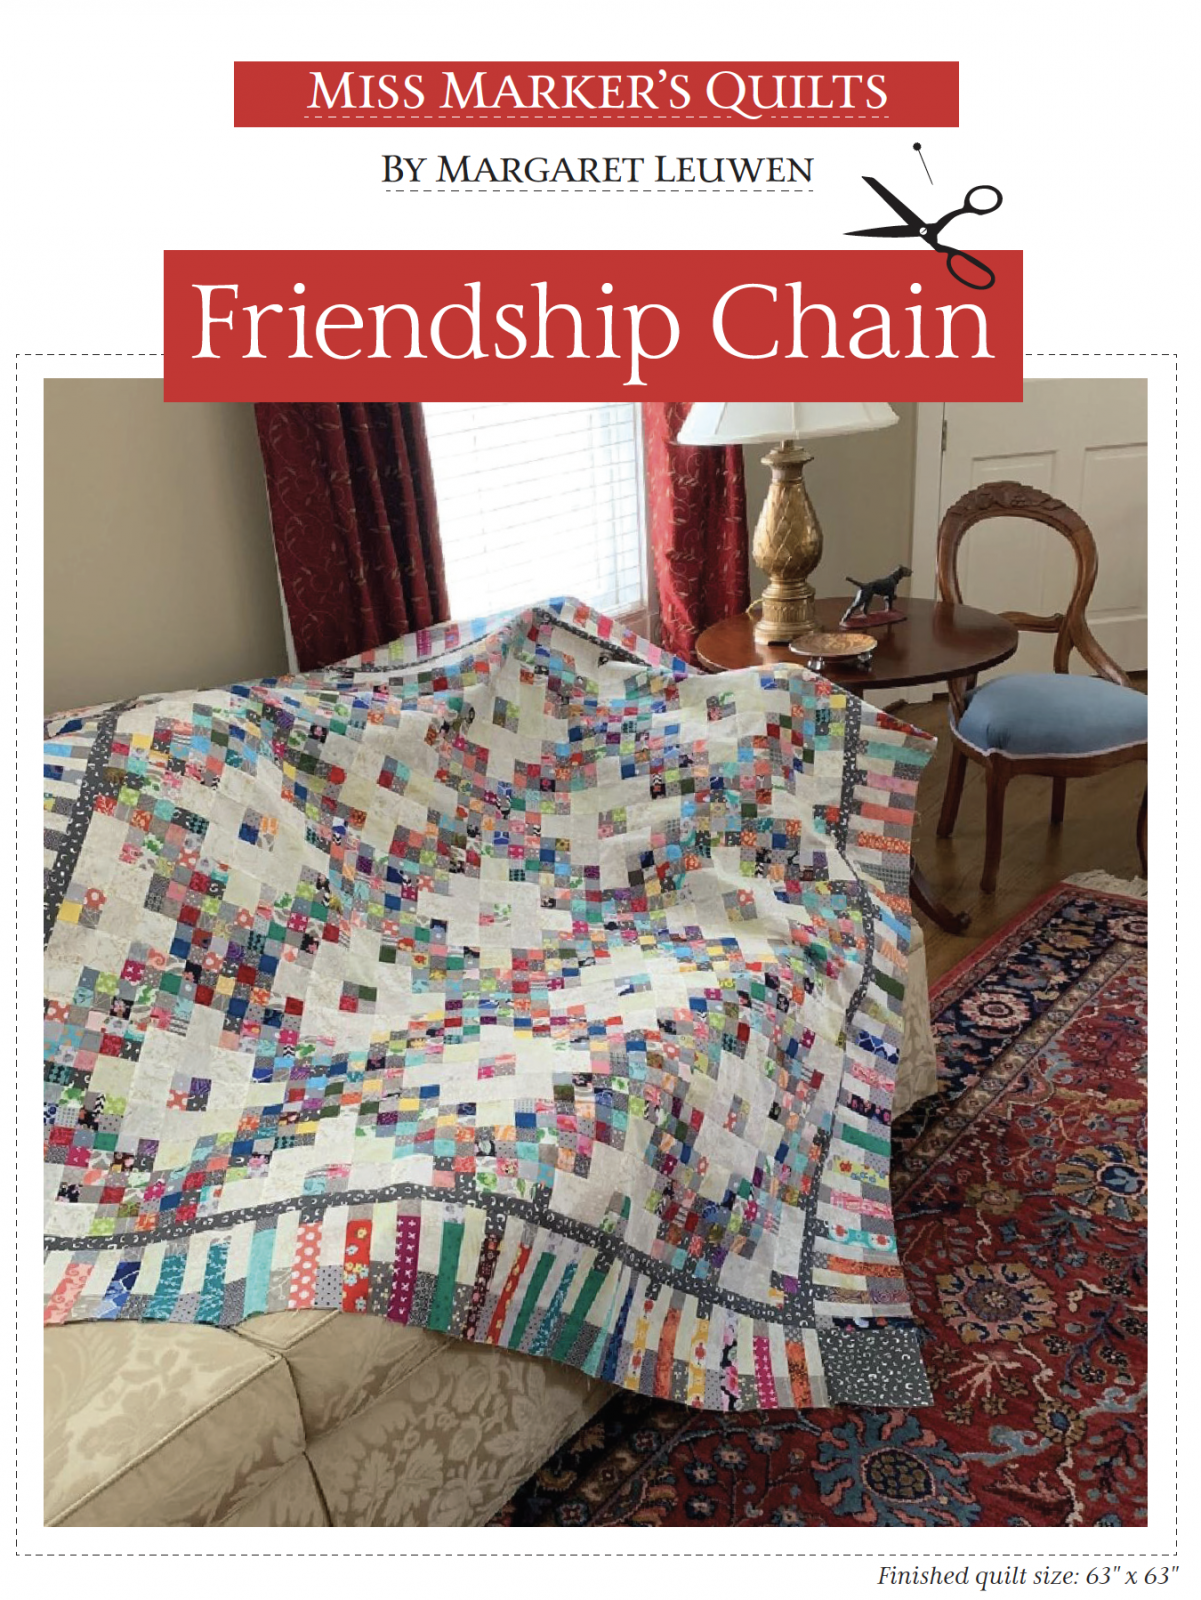 Friendship Chain Quilt Pattern (Printed)